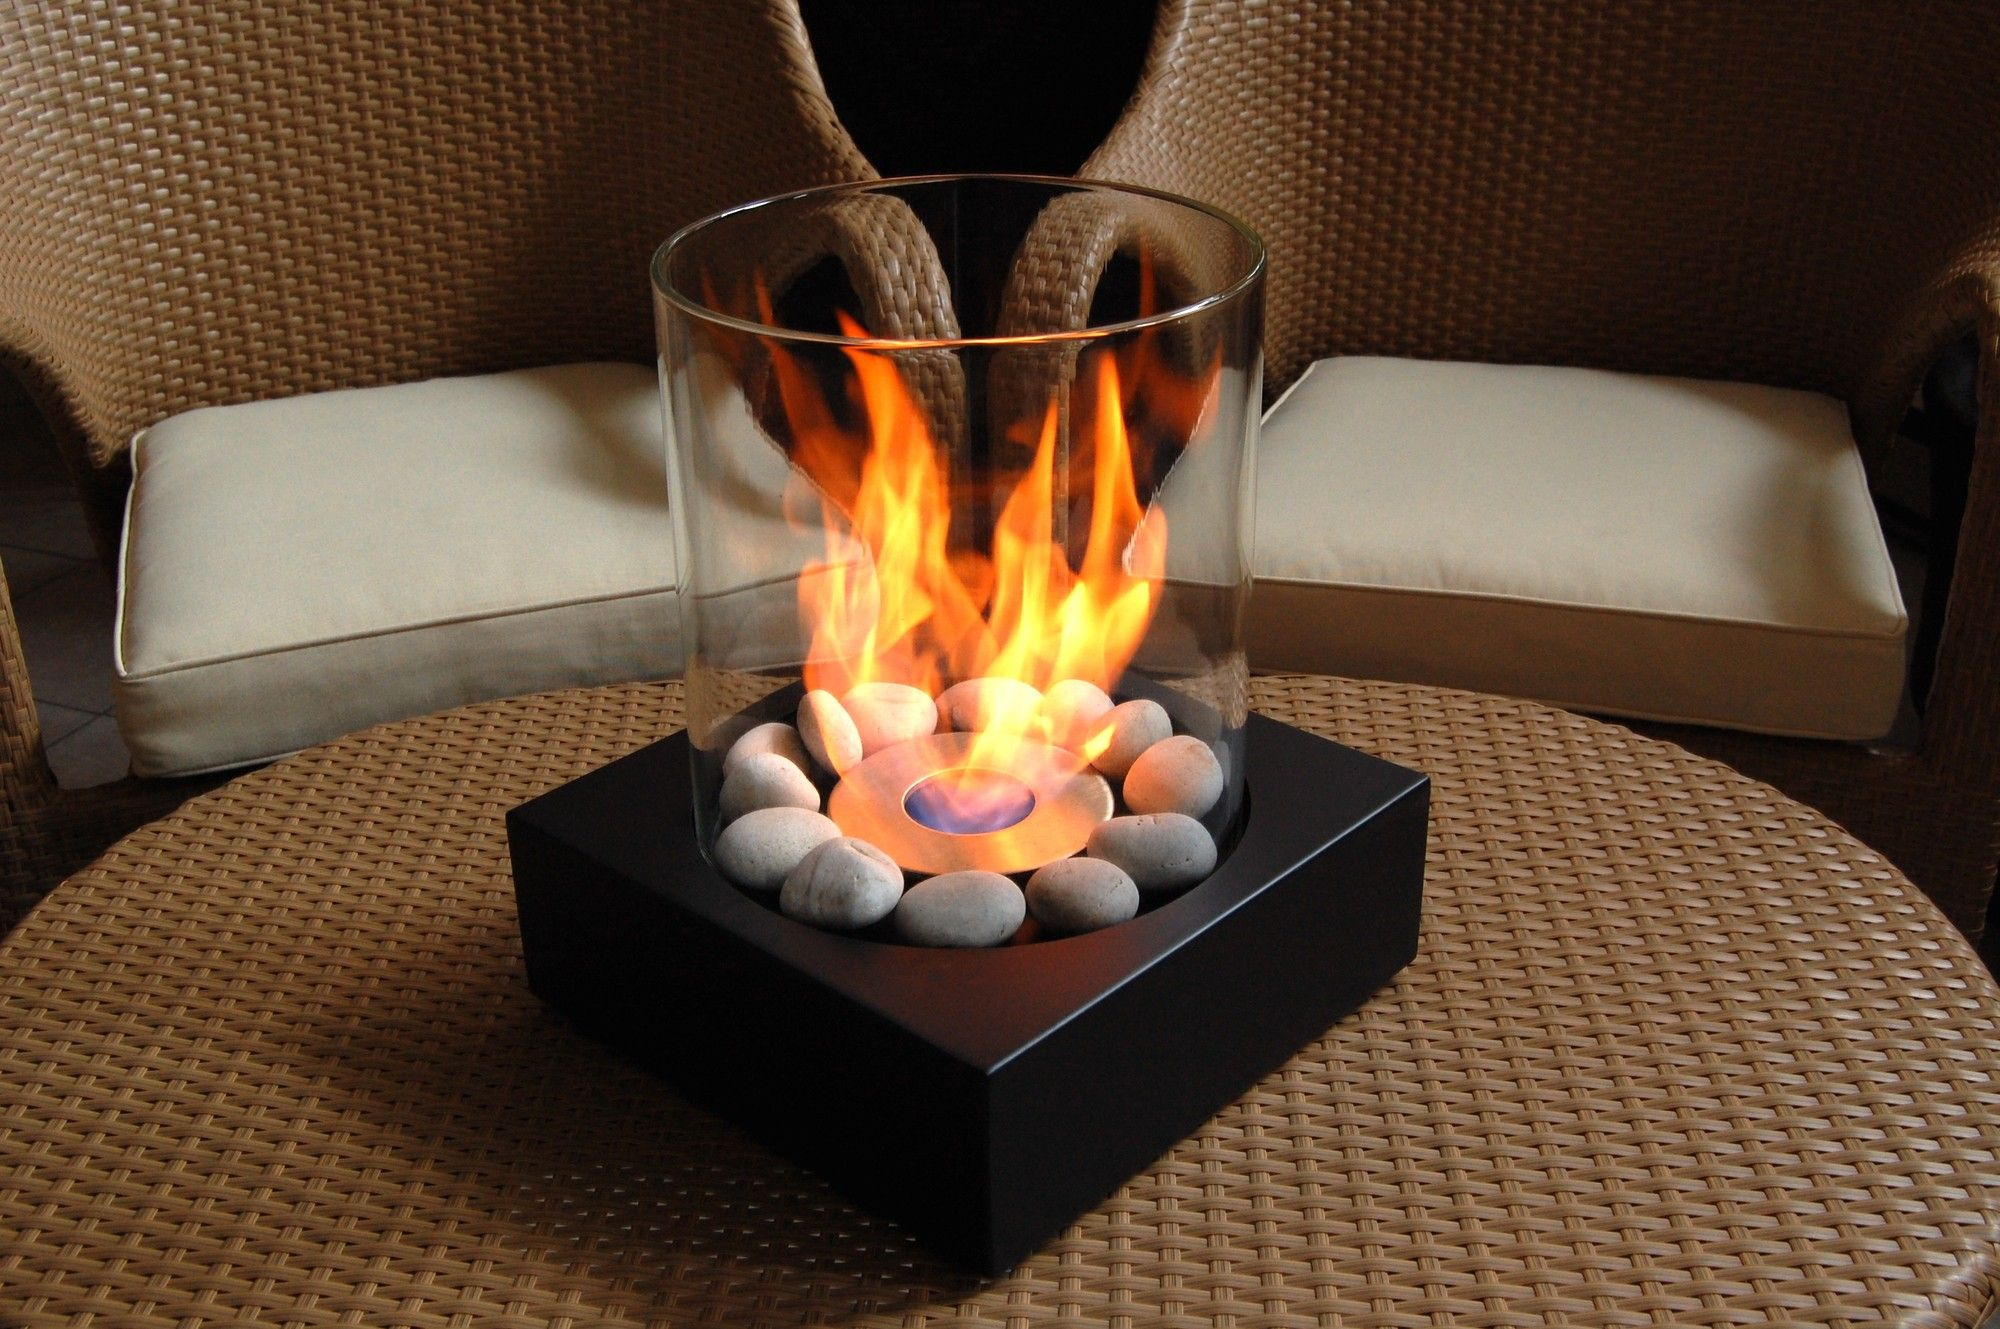 e2f50a31b3e2cfb724032c7099b66cec Top Result 49 Luxury Outdoor Tabletop Fireplace Photos 2018 Xzw1